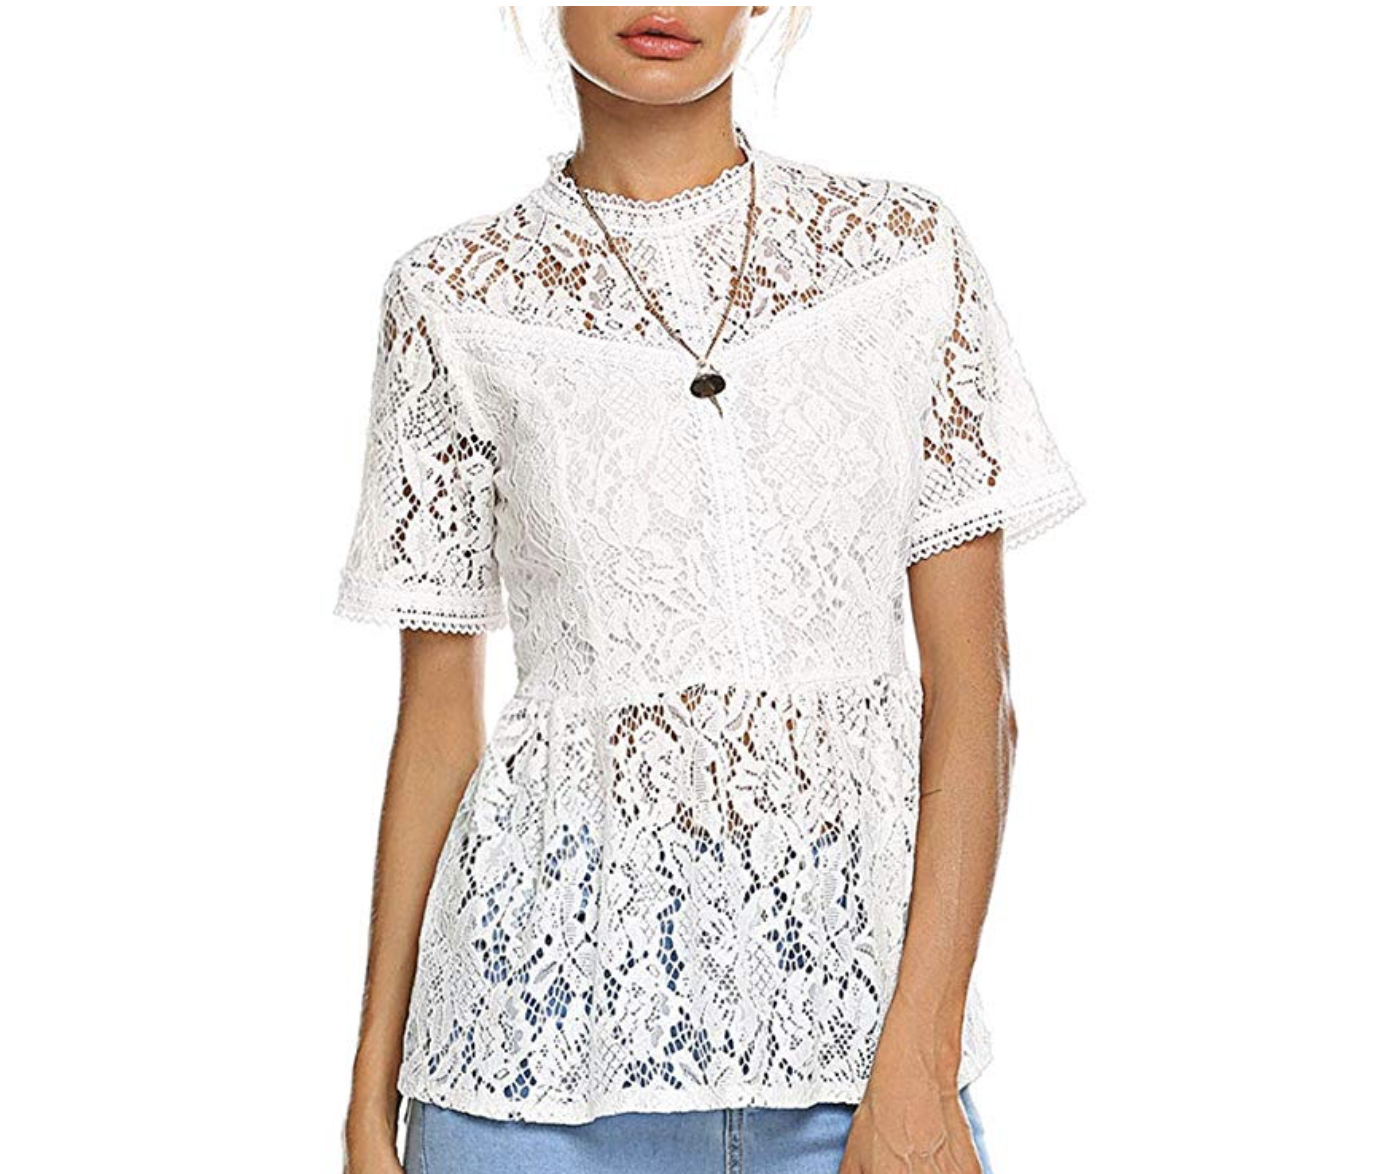 Amazon shopping ideas | Amazon sale | Amazon spring fashion | spring clothing | white shirt | white lace shirt